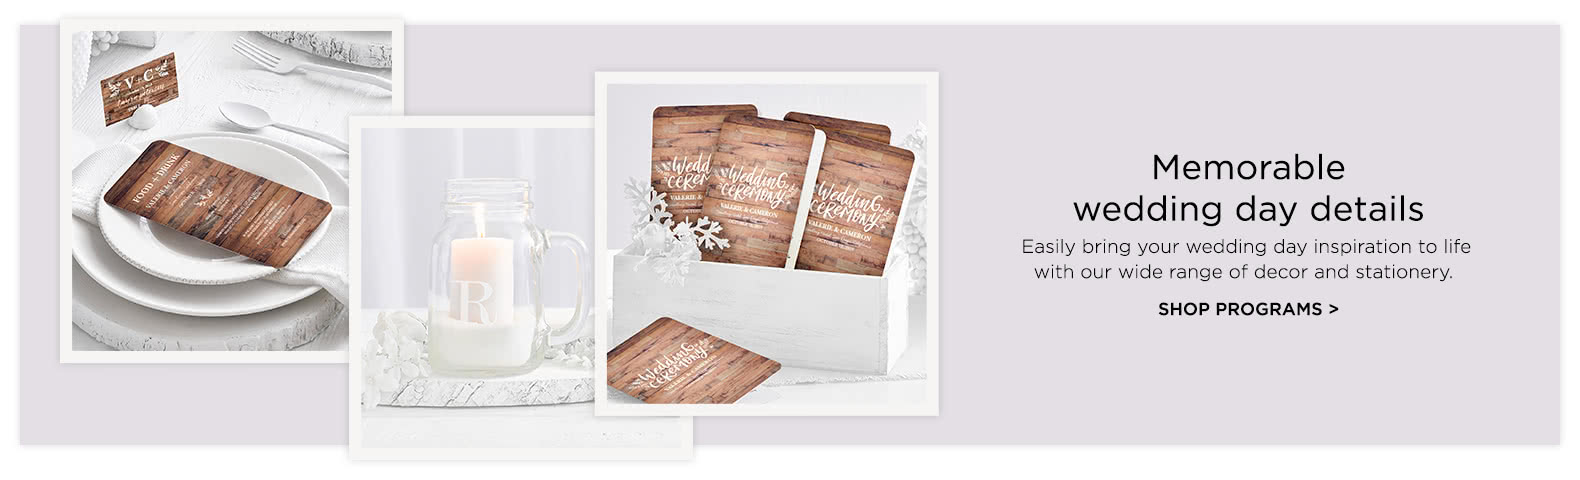 Wedding day wedding reception and ceremony cards shutterfly wedding day stationery junglespirit Image collections